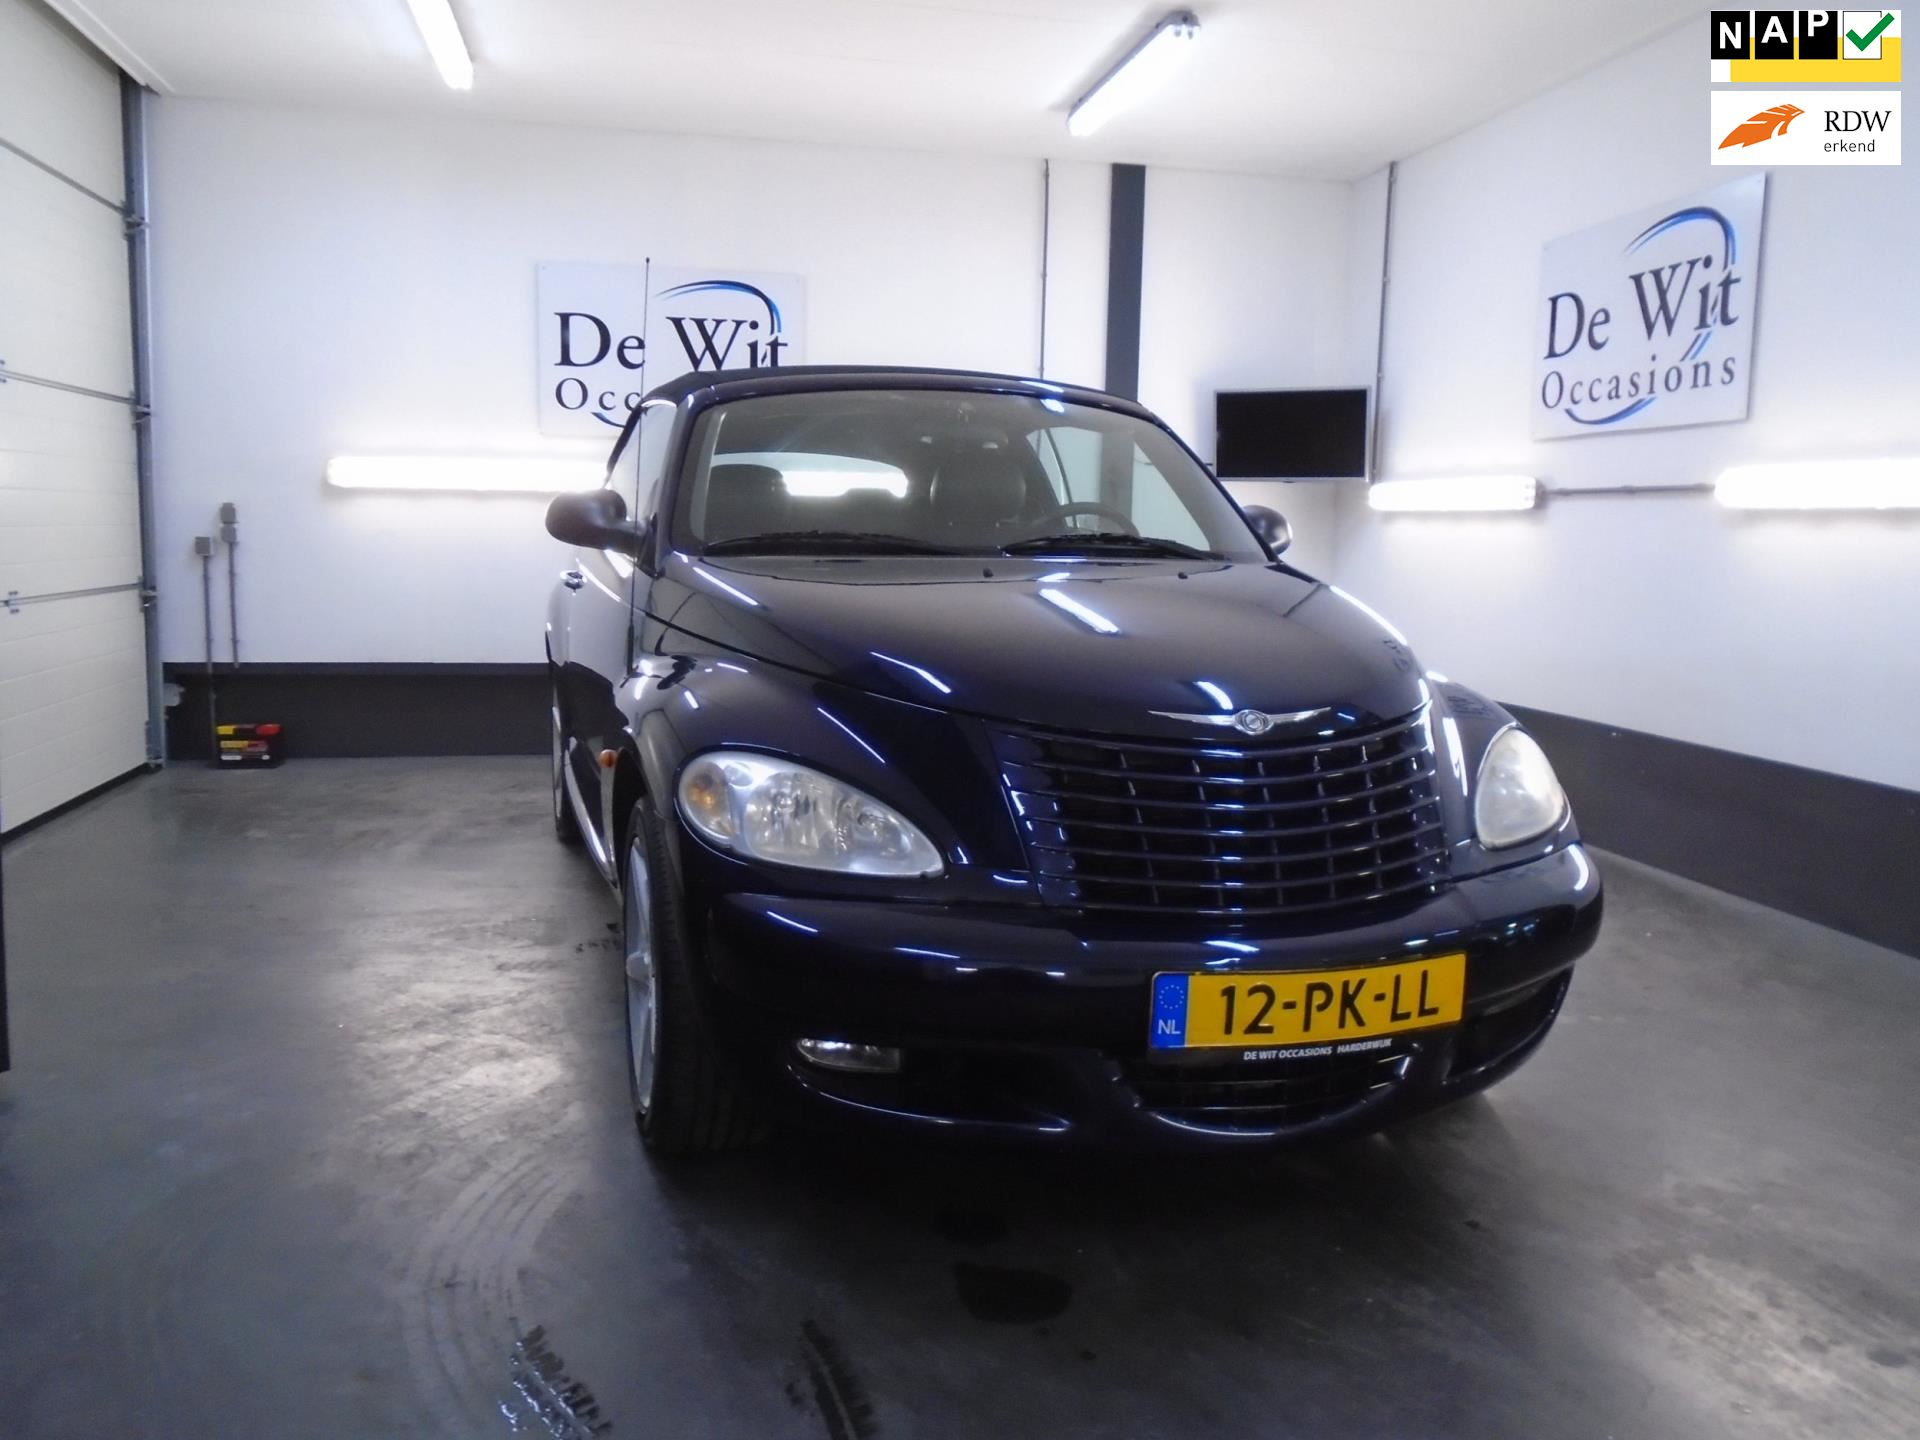 Chrysler PT Cruiser Cabrio occasion - De Wit Occasions